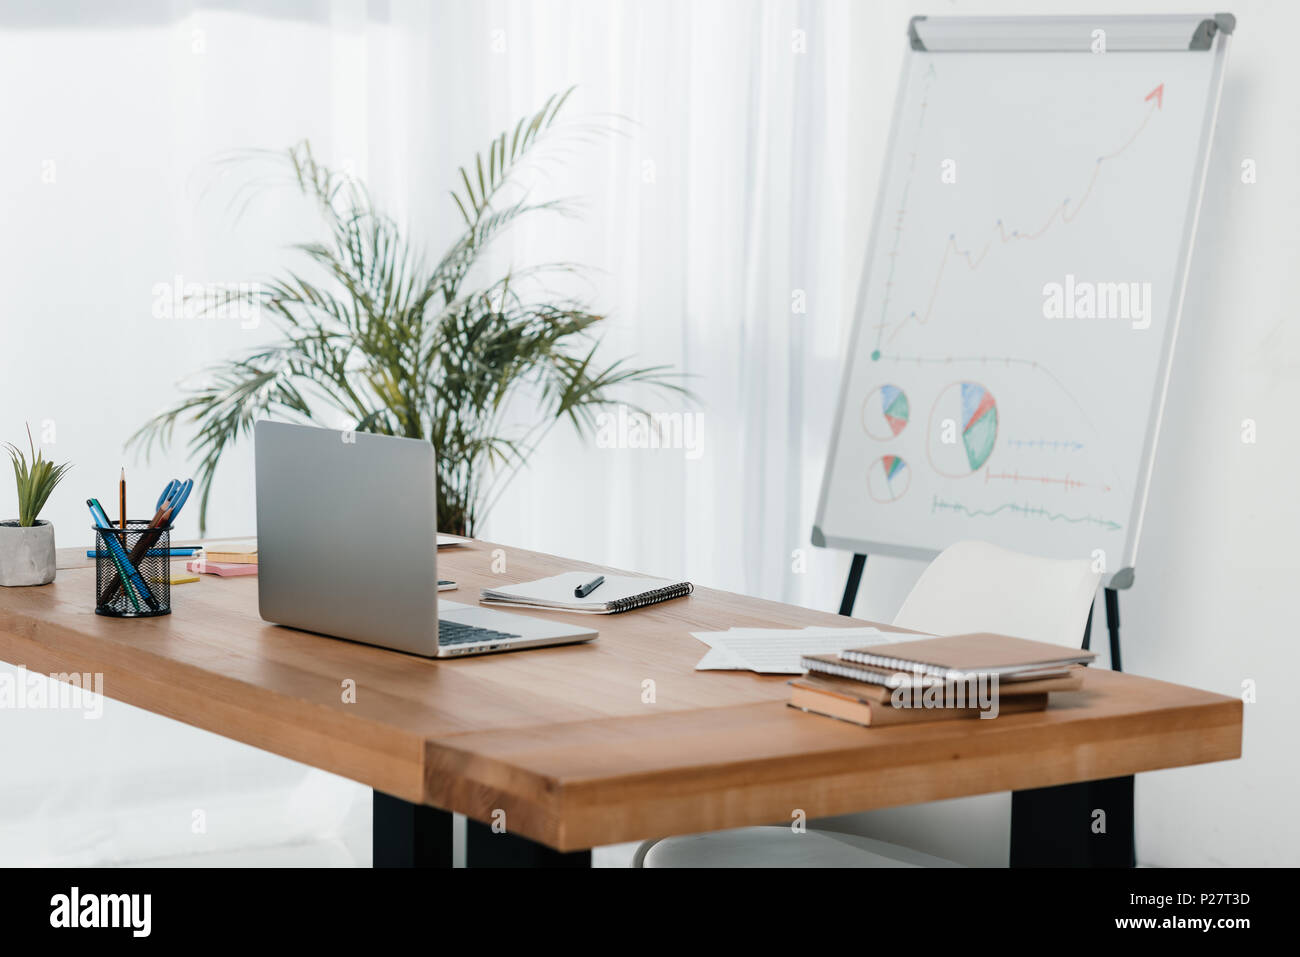 workplace with laptop and office supplies in office with white board - Stock Image